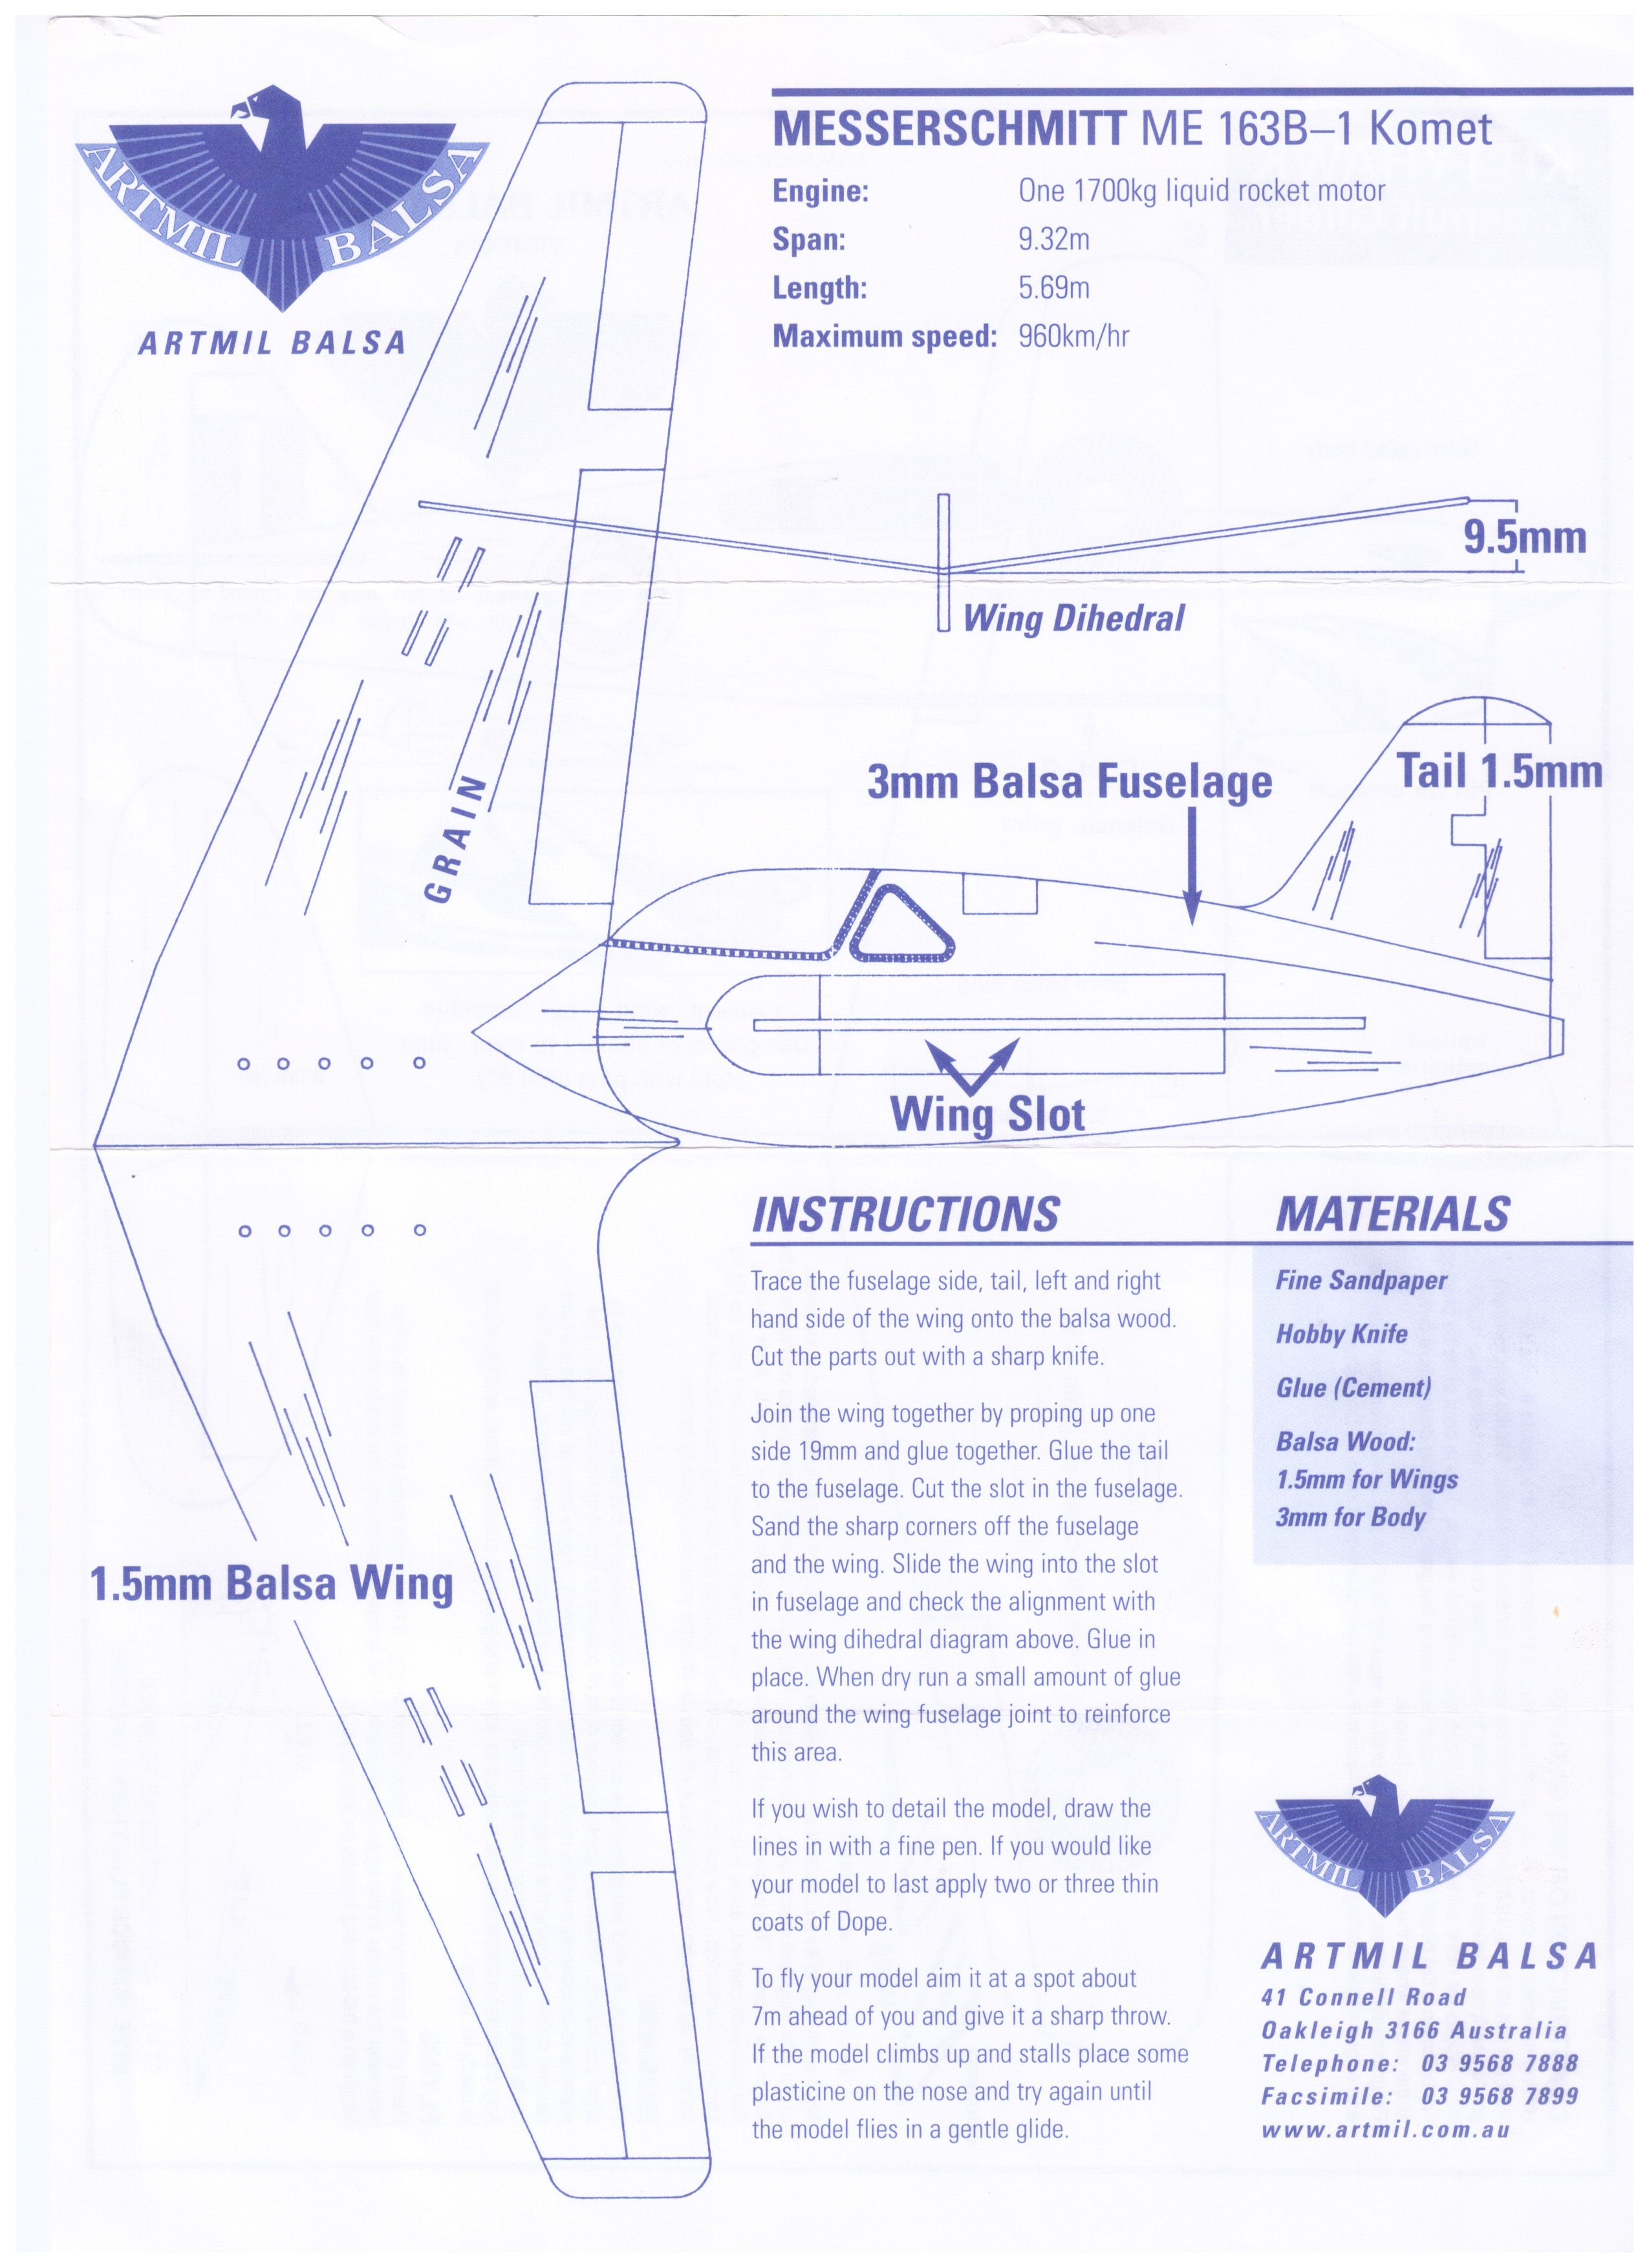 Cool Paper Plane Diagram Street Signs Venn Make Your Own Balsa Instructions Or Print Out And Have A